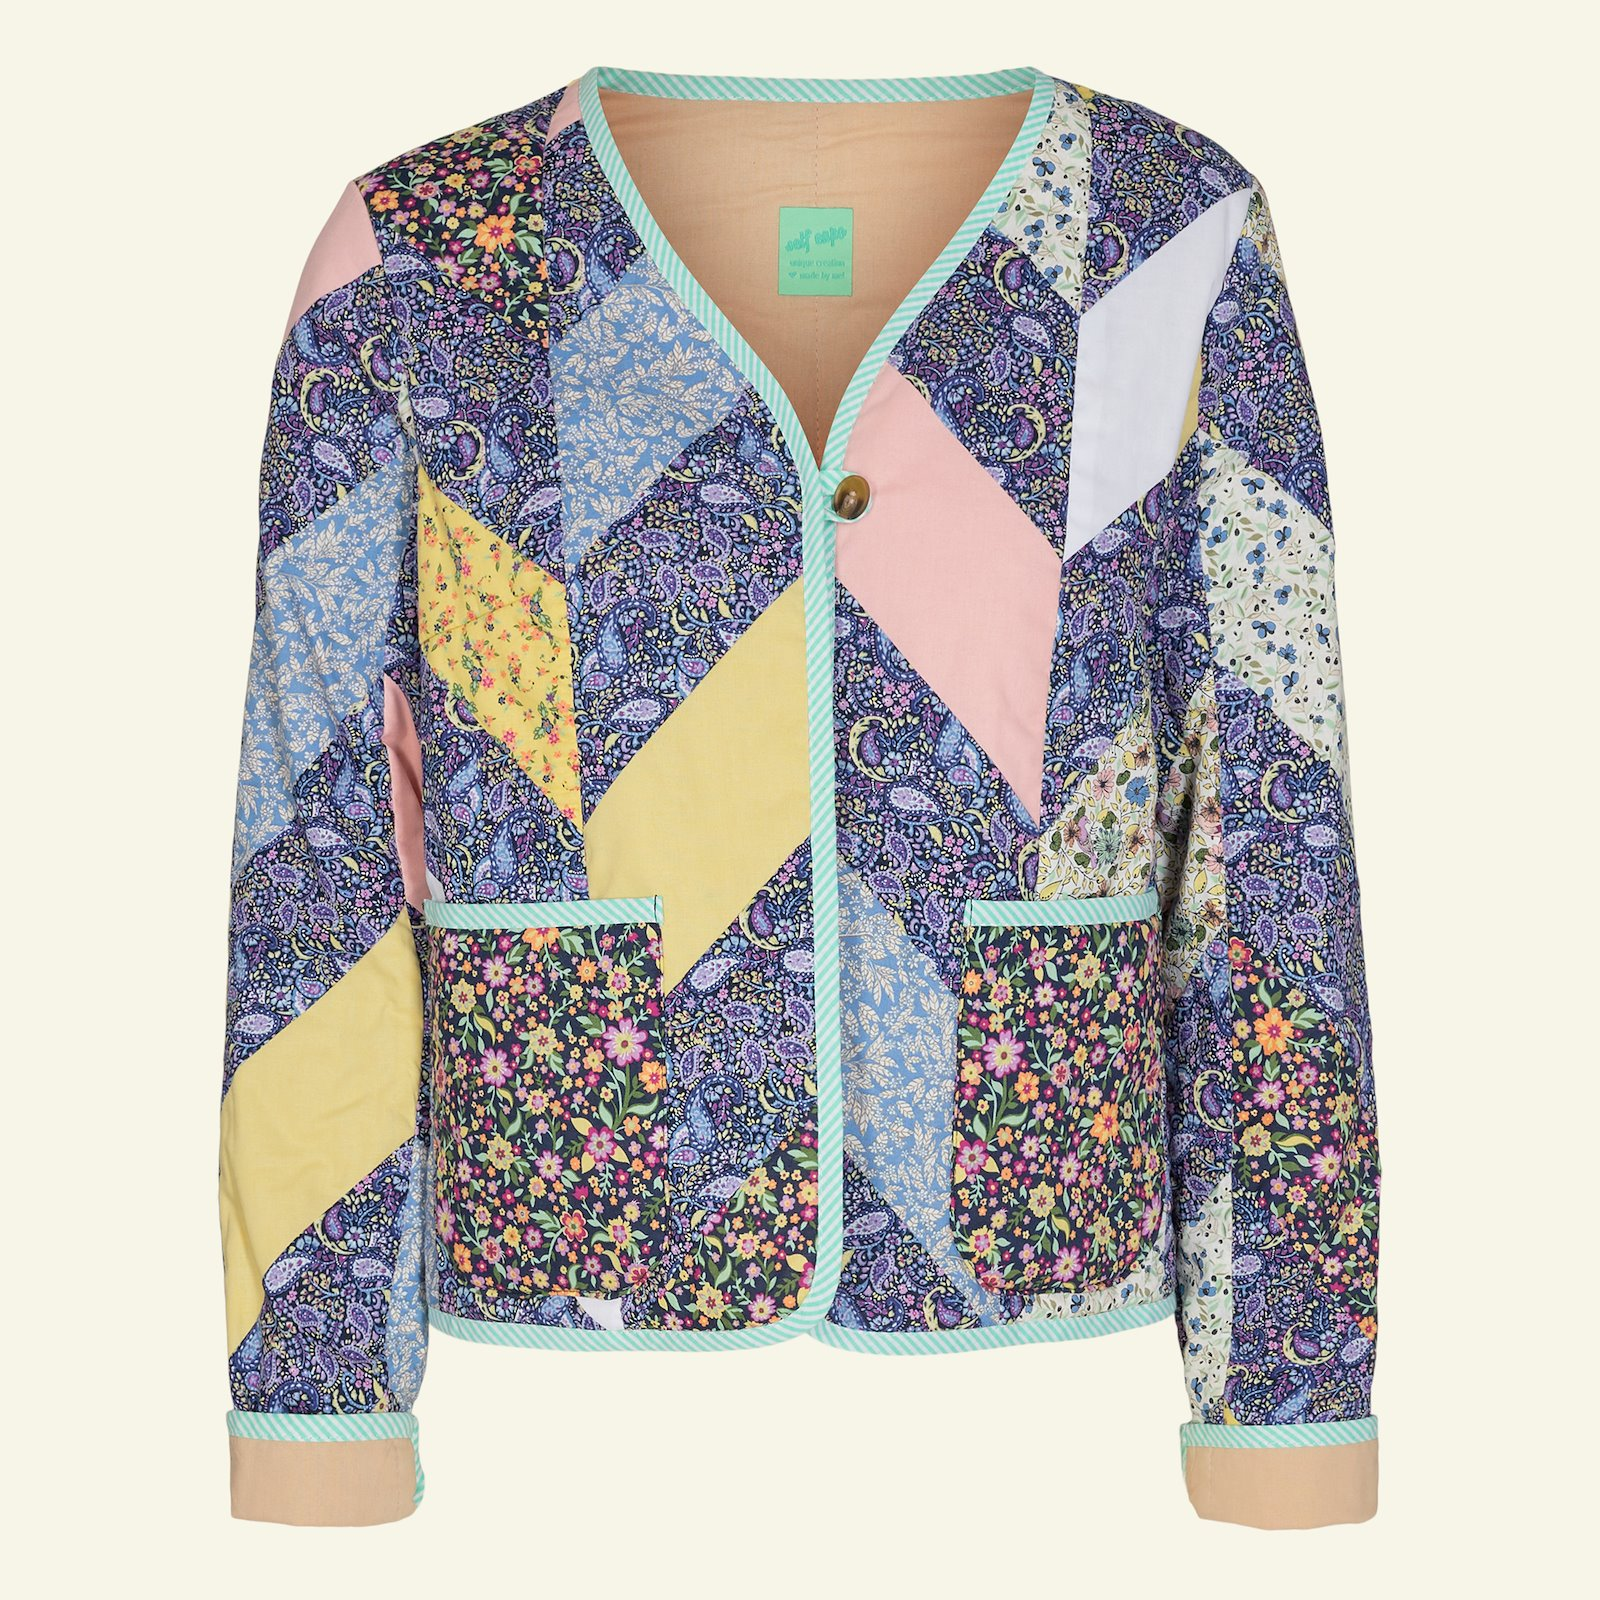 Quilted jacket and waistcoat, 34/6 p24047_852365_852363_852364_852362_852359_852366_4358_4201_4357_64108_sskit